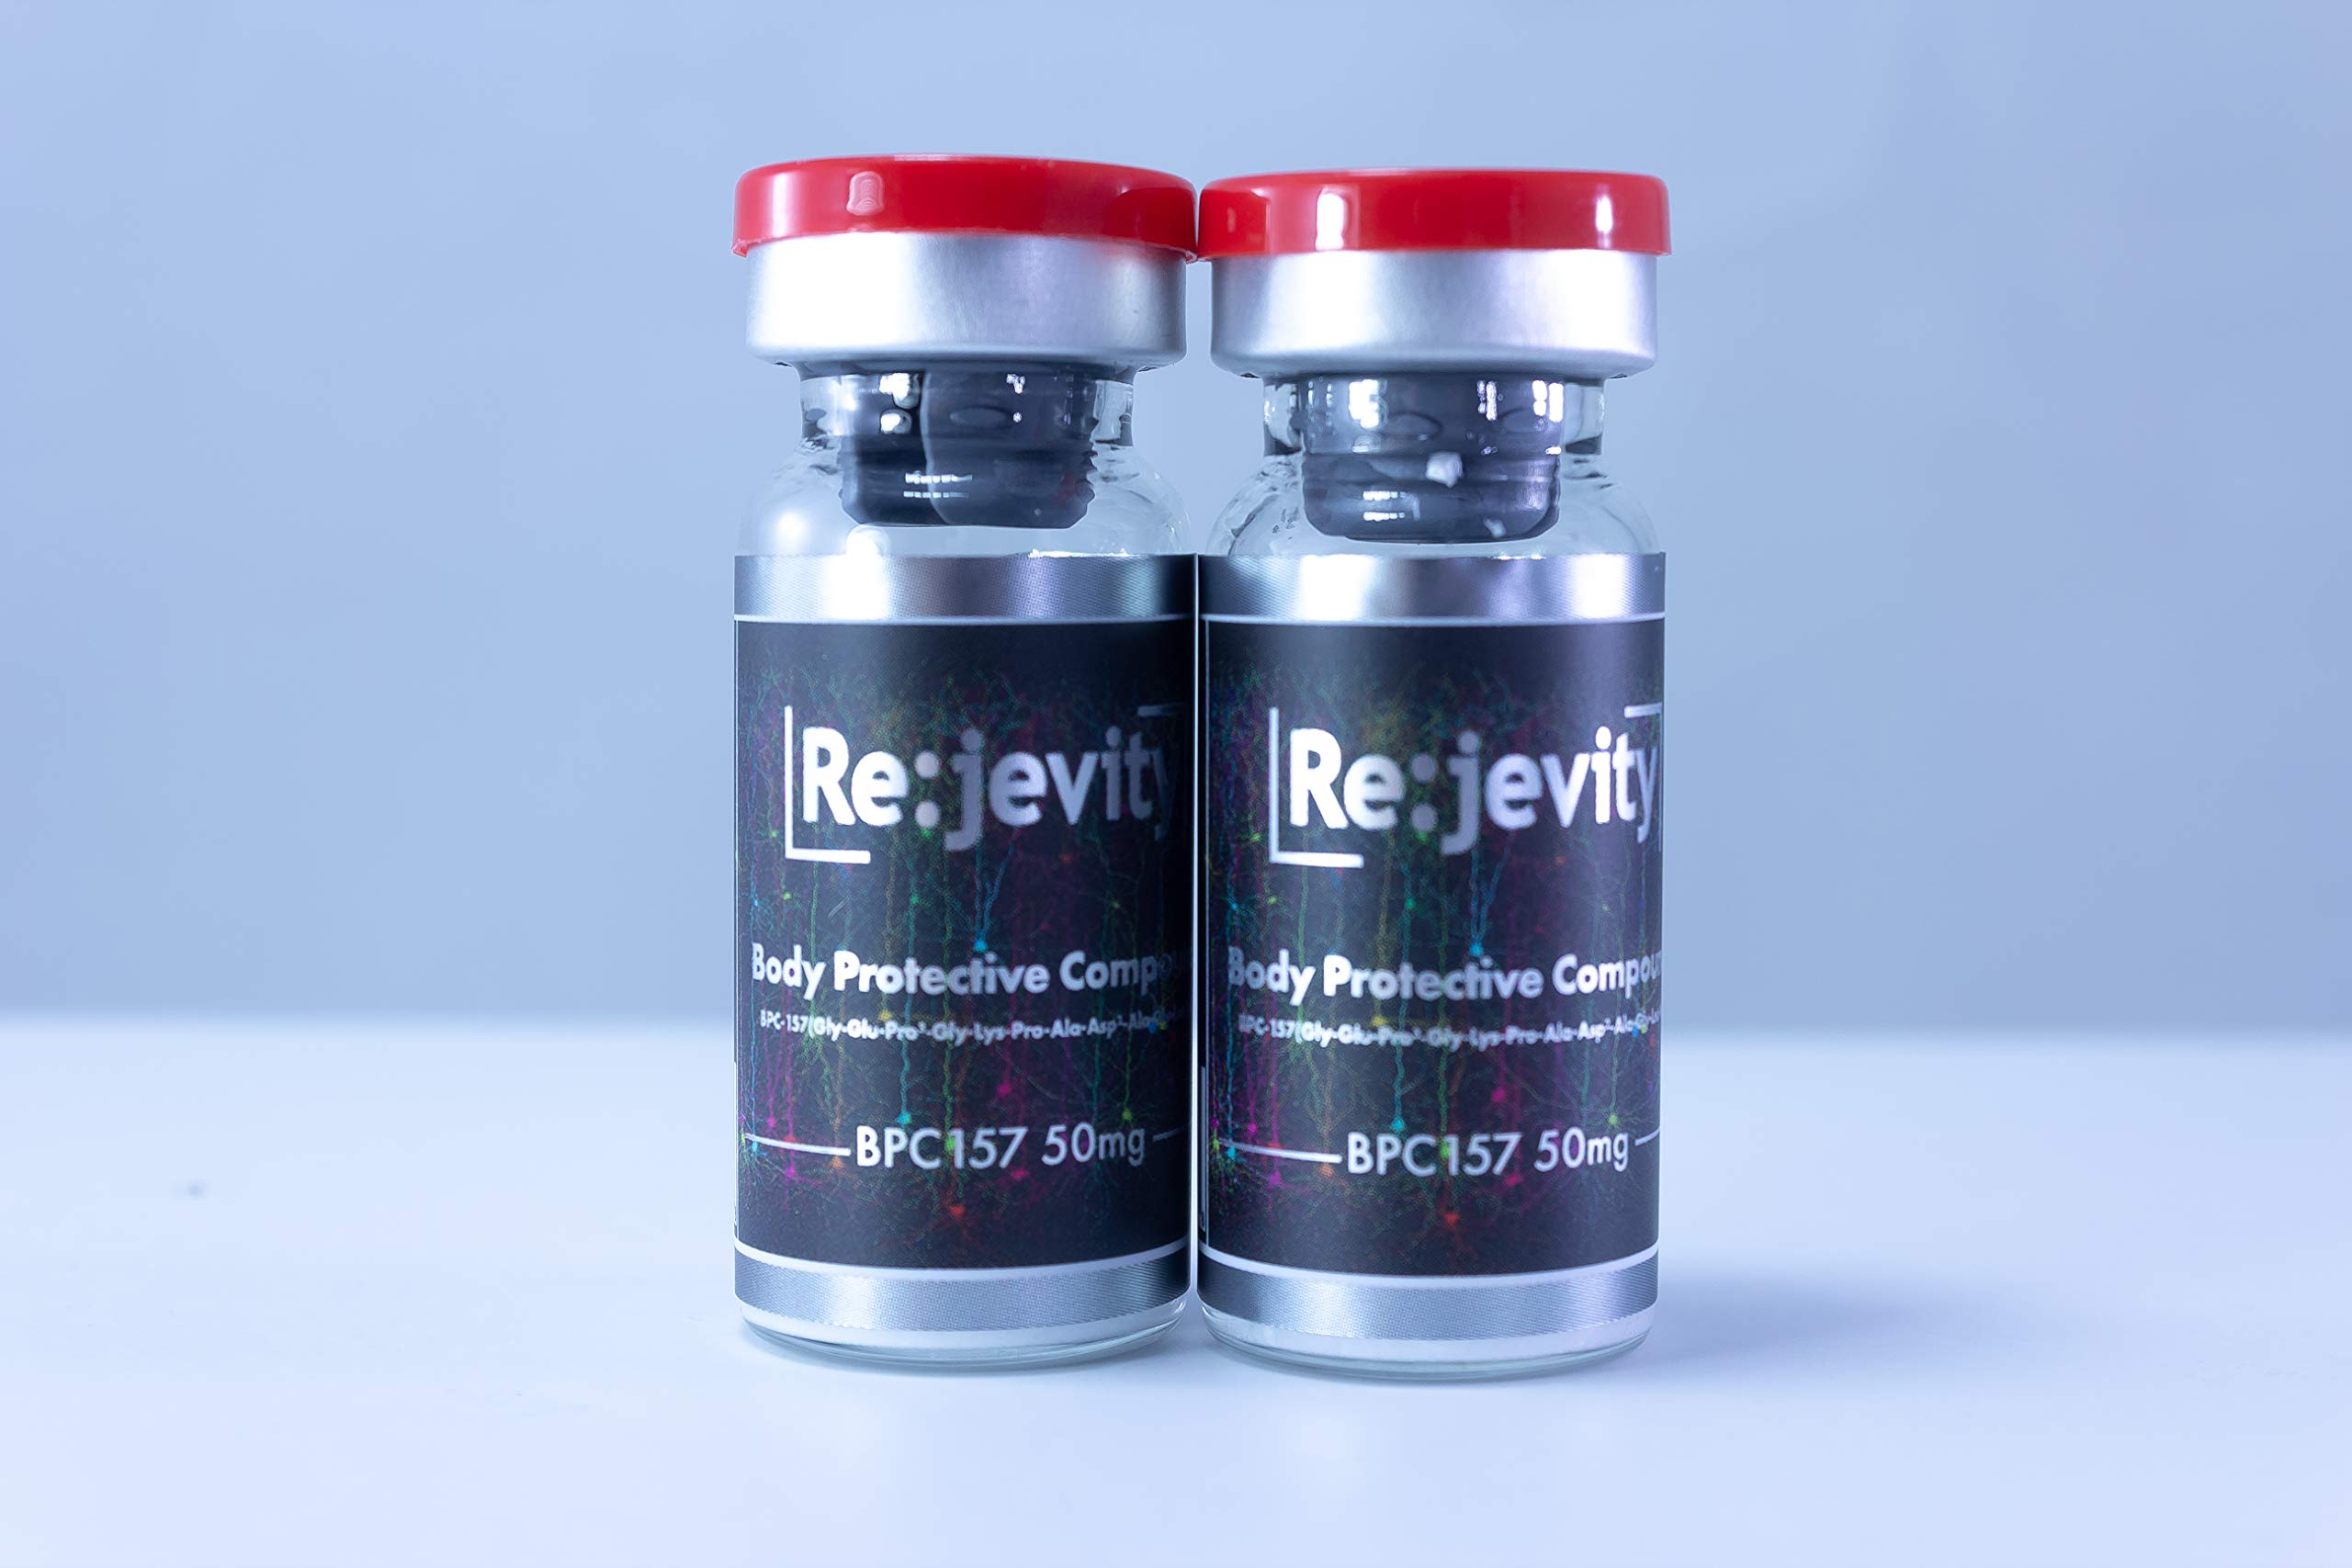 Rejevity BPC-157 50mg (Body Protective Compound) 2 Pack